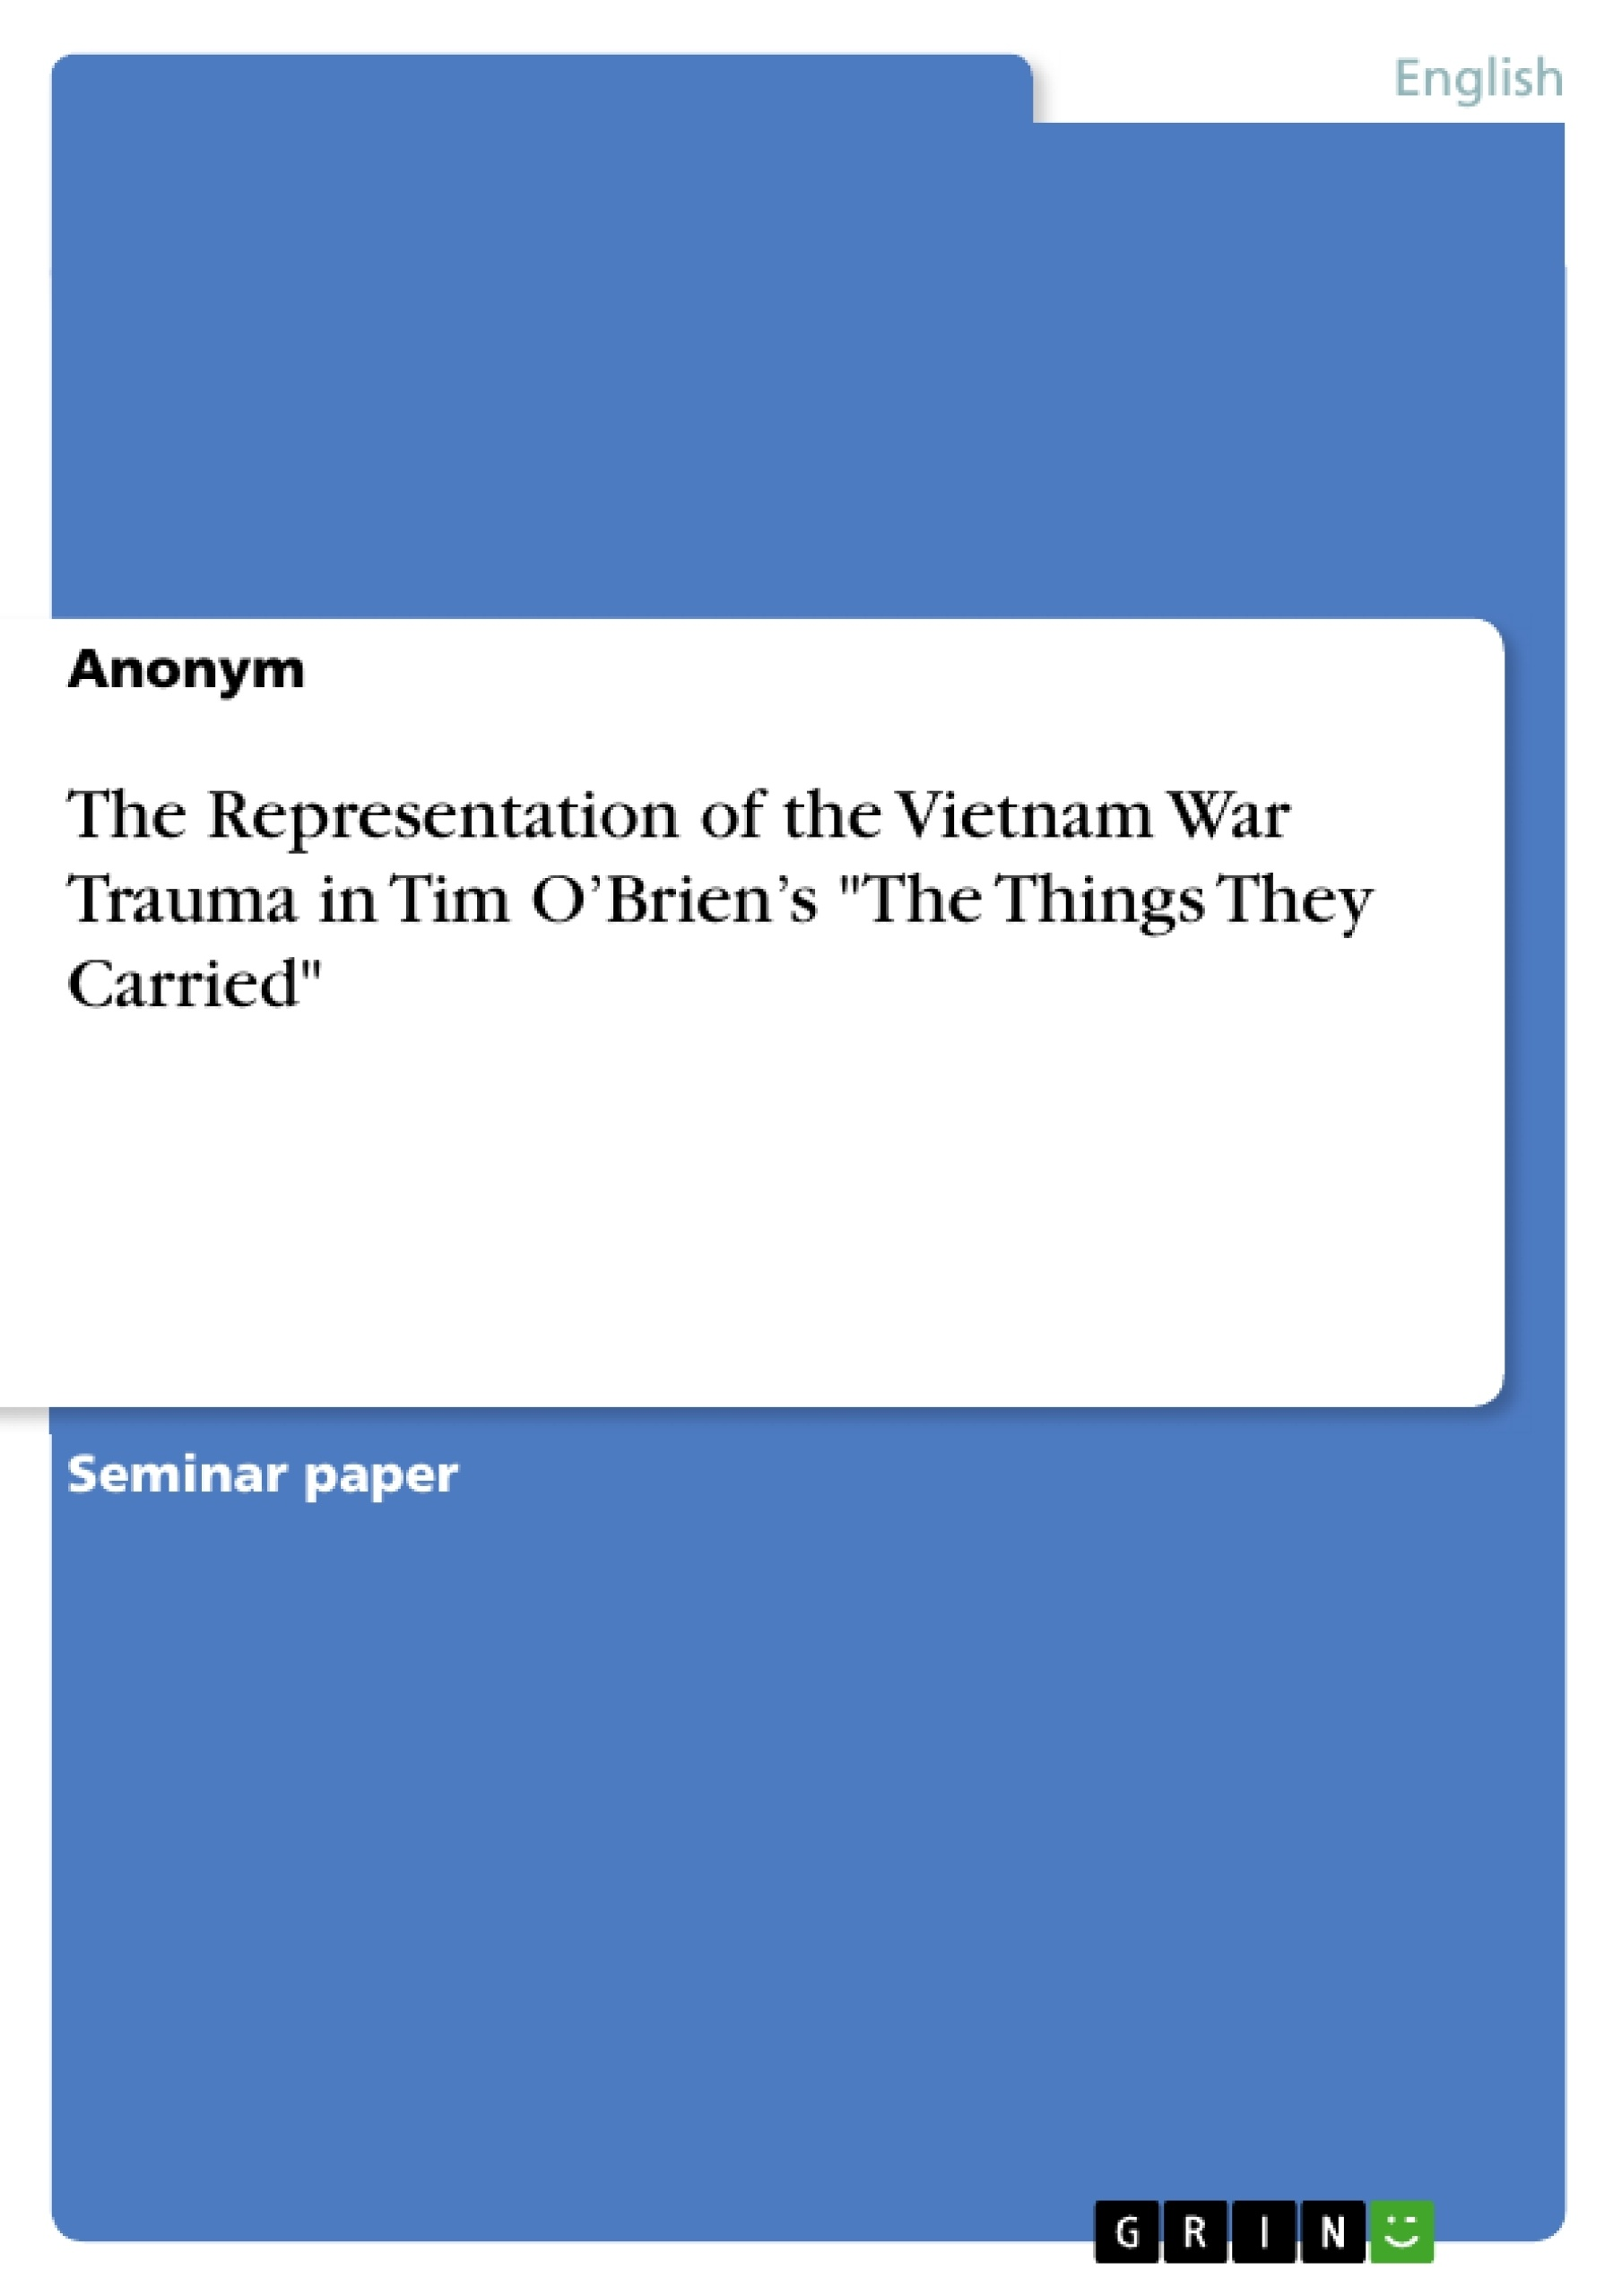 term papers on the vietnam war Vietnam war and american culture term papers illustrate how the united states was deeply affected by the us entering vietnam mla research papers are easy when paper.